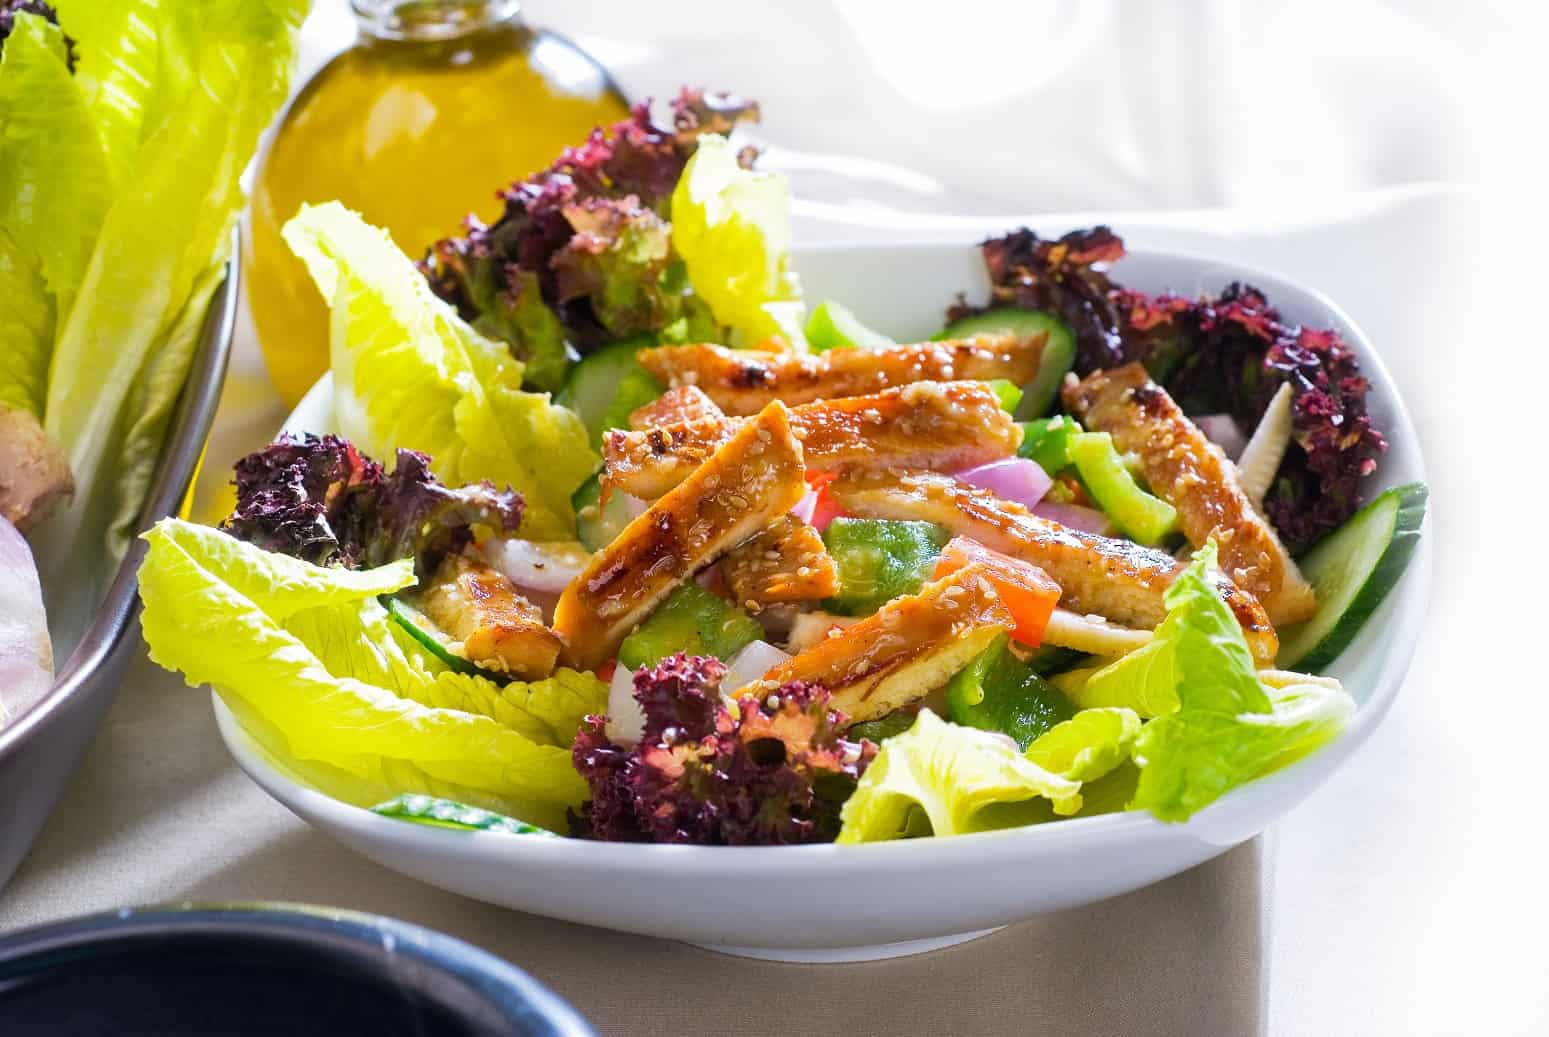 Backhendlsalat - Fit in den Sommer